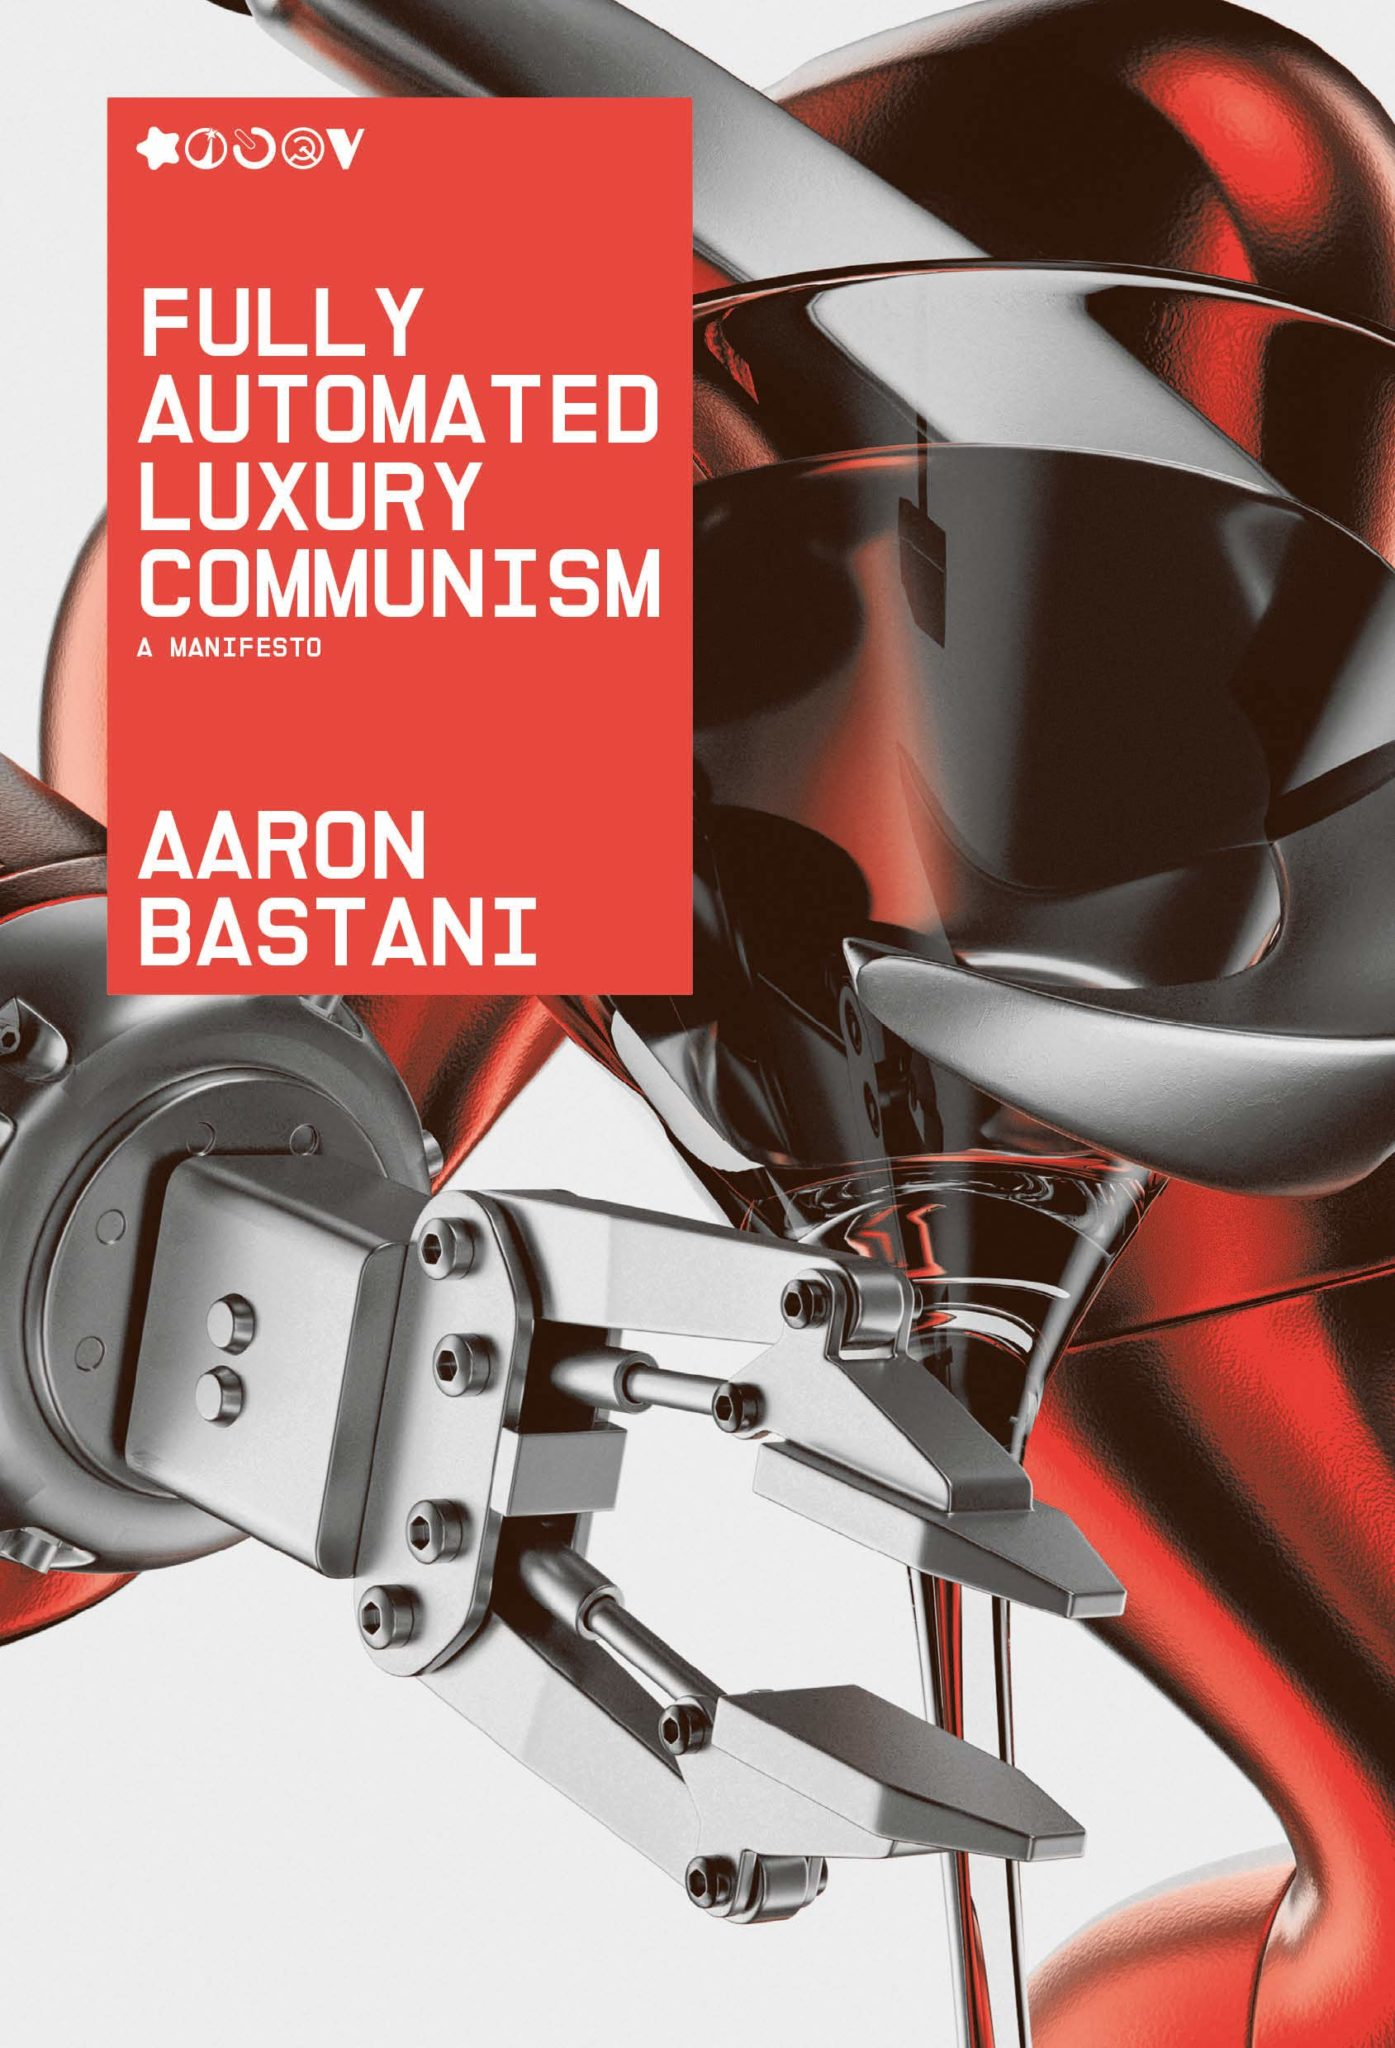 Book cover for Fully Automated Luxury Communism